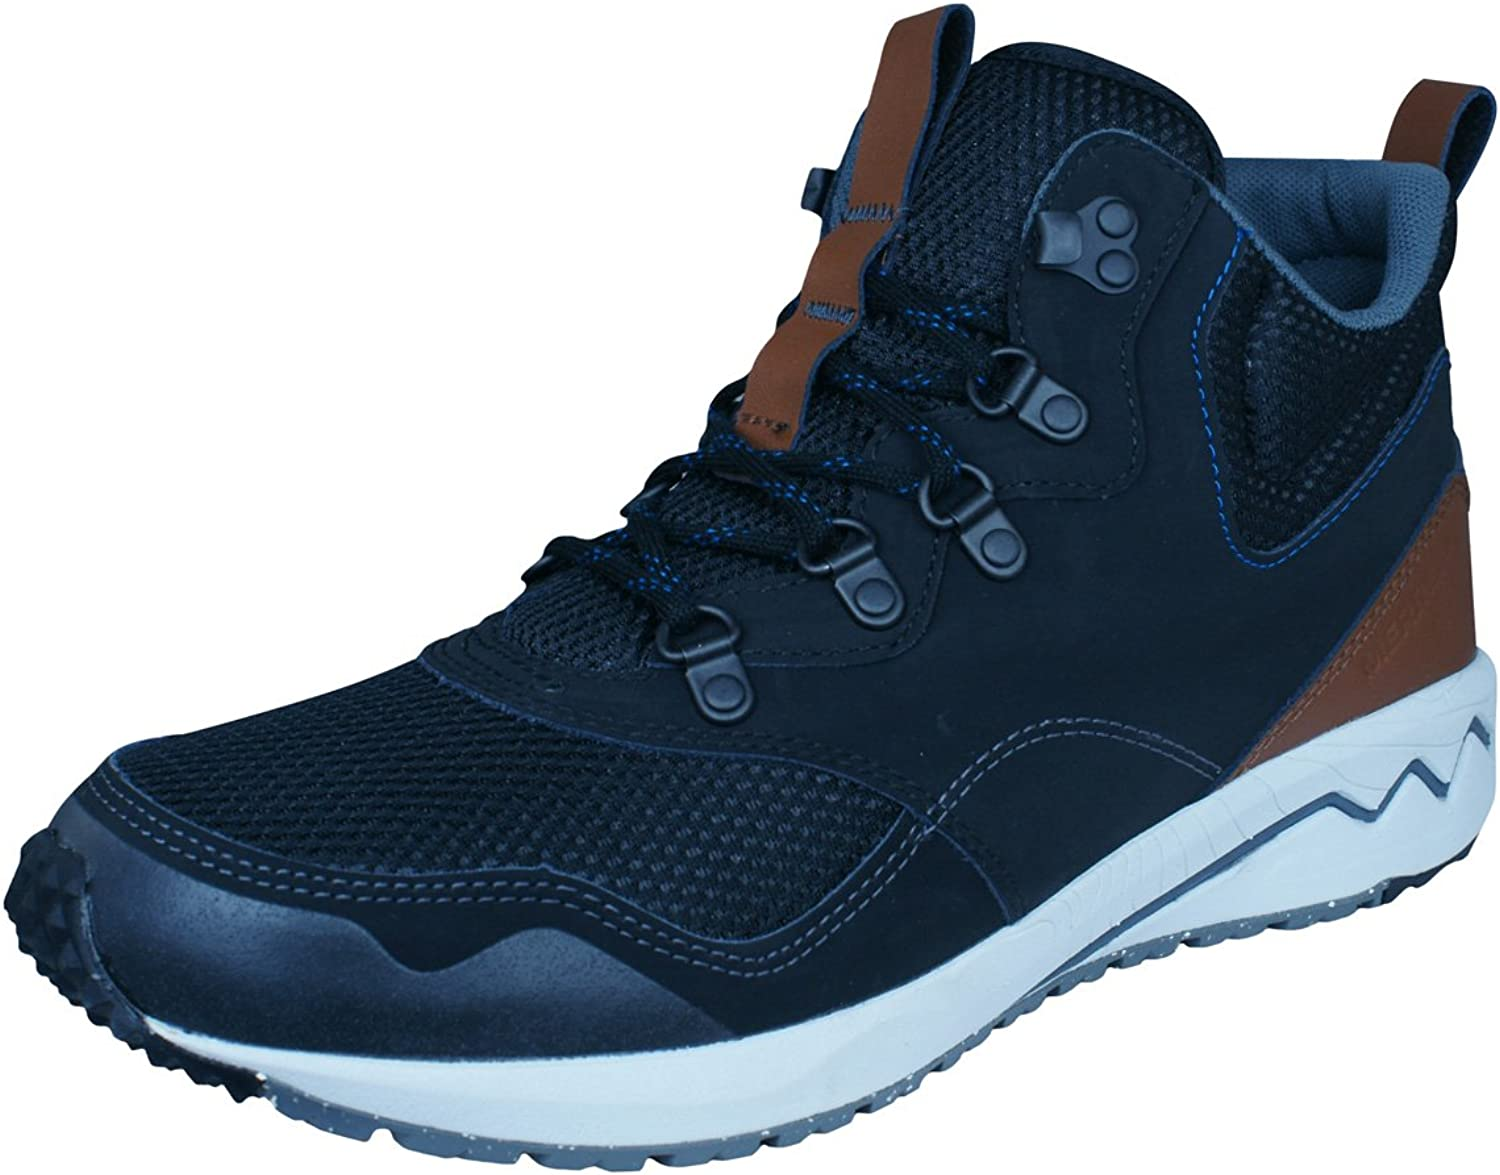 Merrell Stowe Mid M, Men's High Trainers